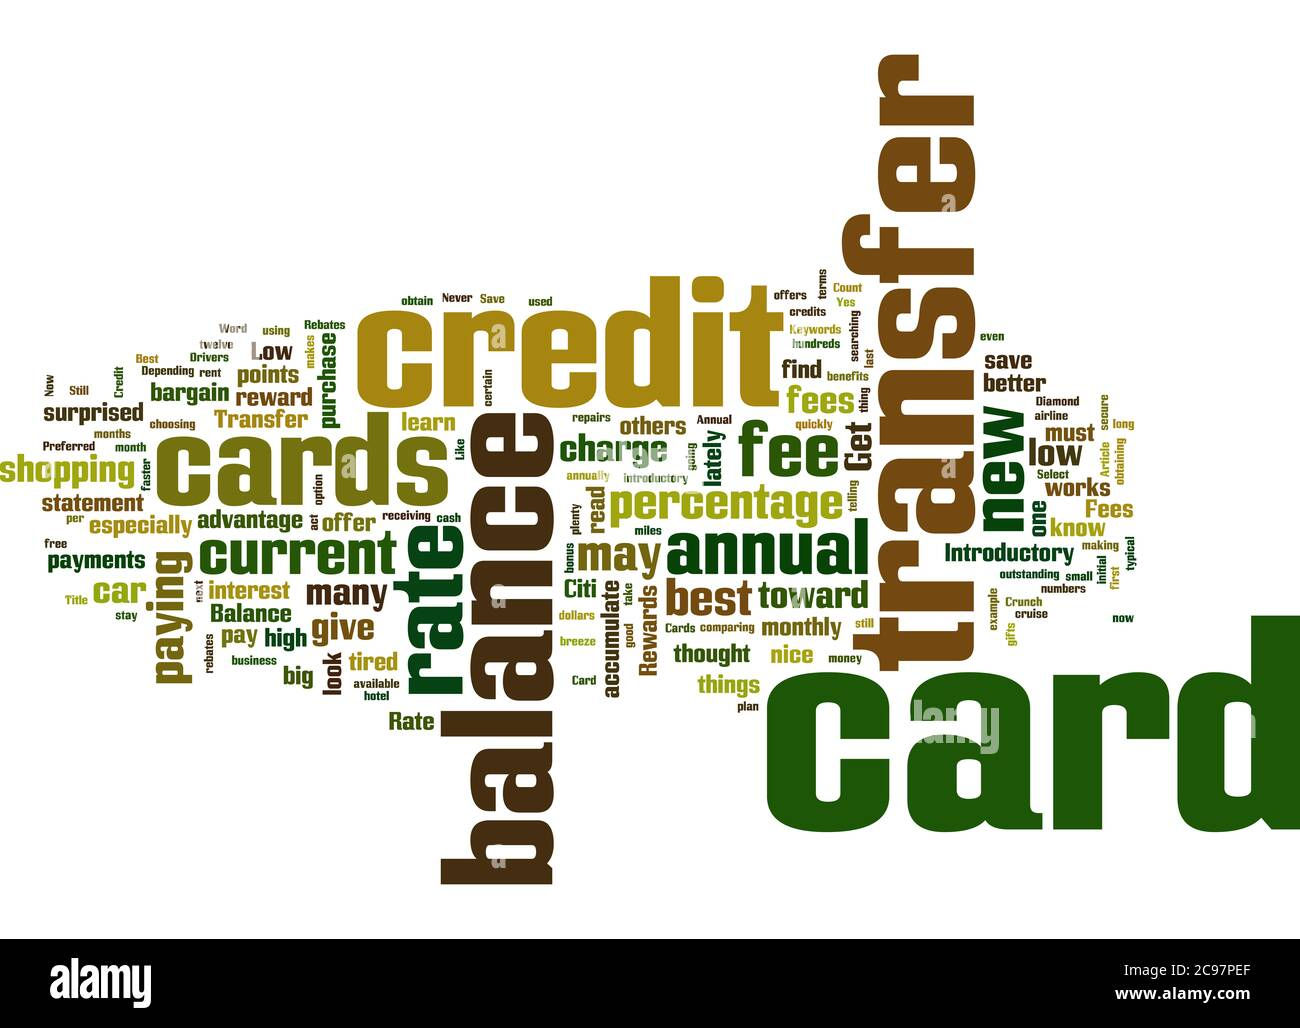 Word Cloud Summary Of The Best Balance Transfer Credit Cards Get Yours Now Article Stock Photo Alamy